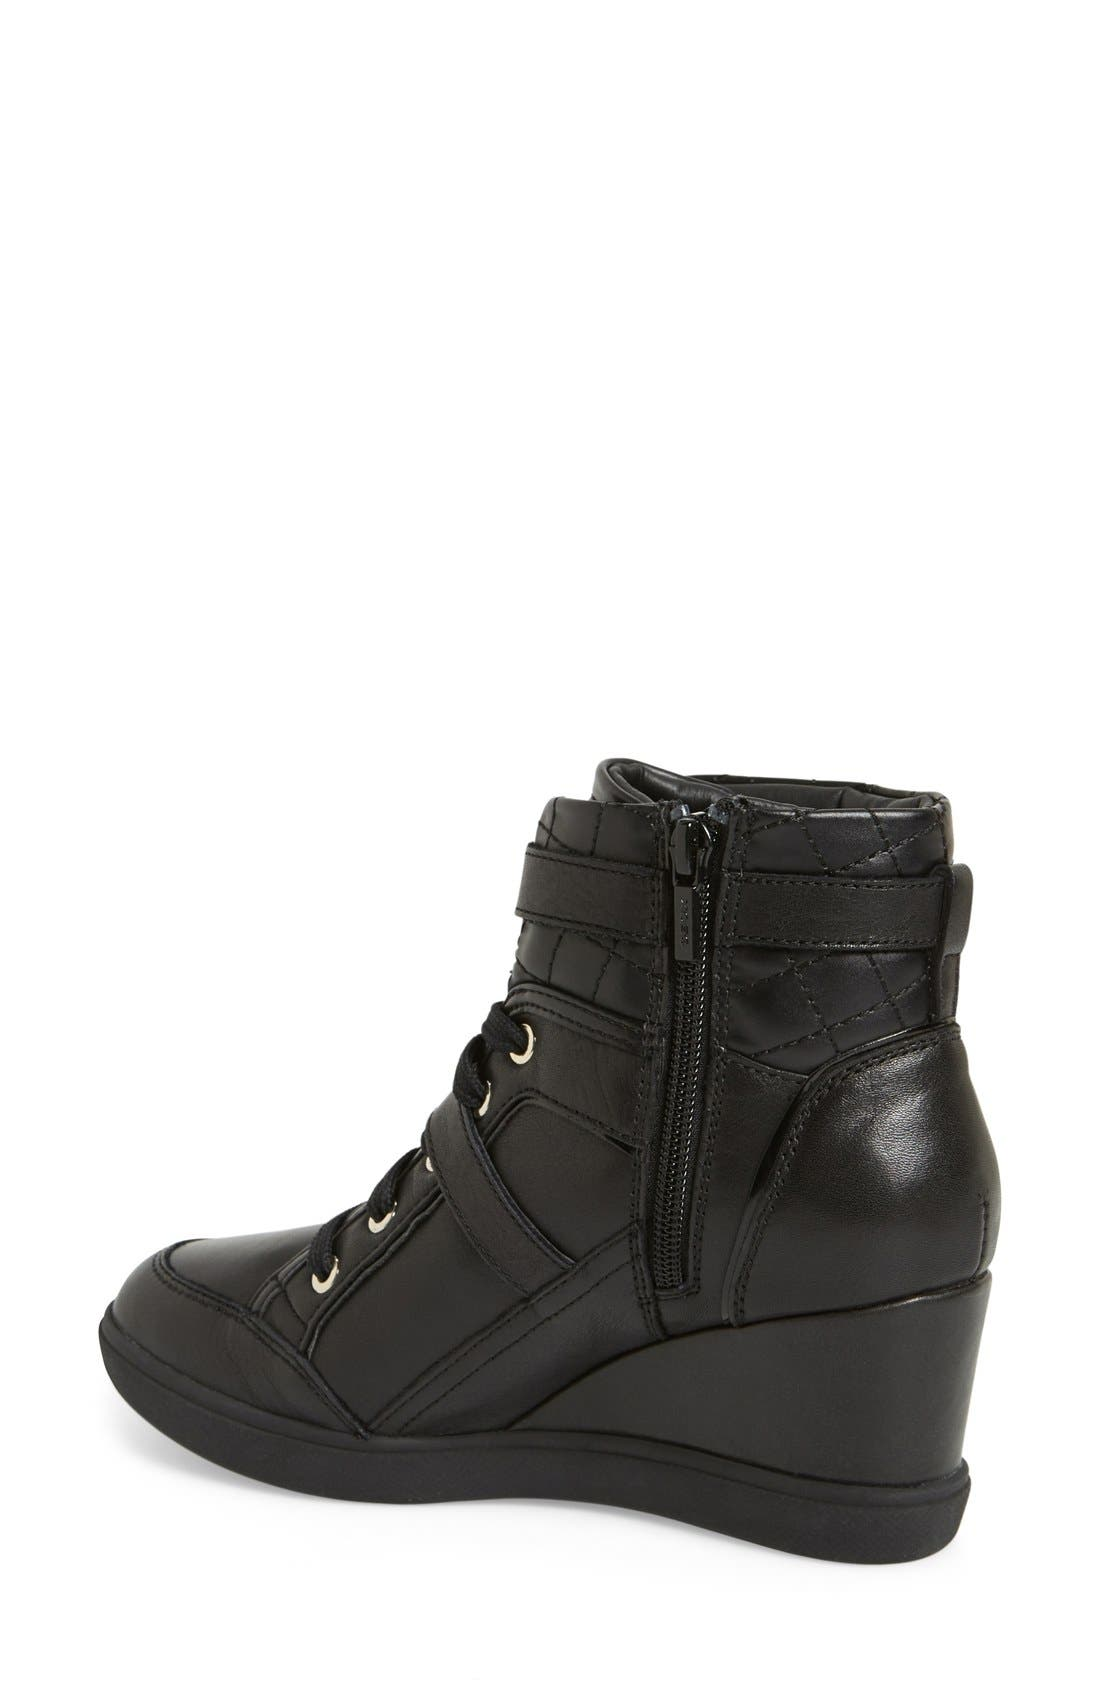 Alternate Image 2  - Geox 'Eleni' Wedge Sneaker (Women)